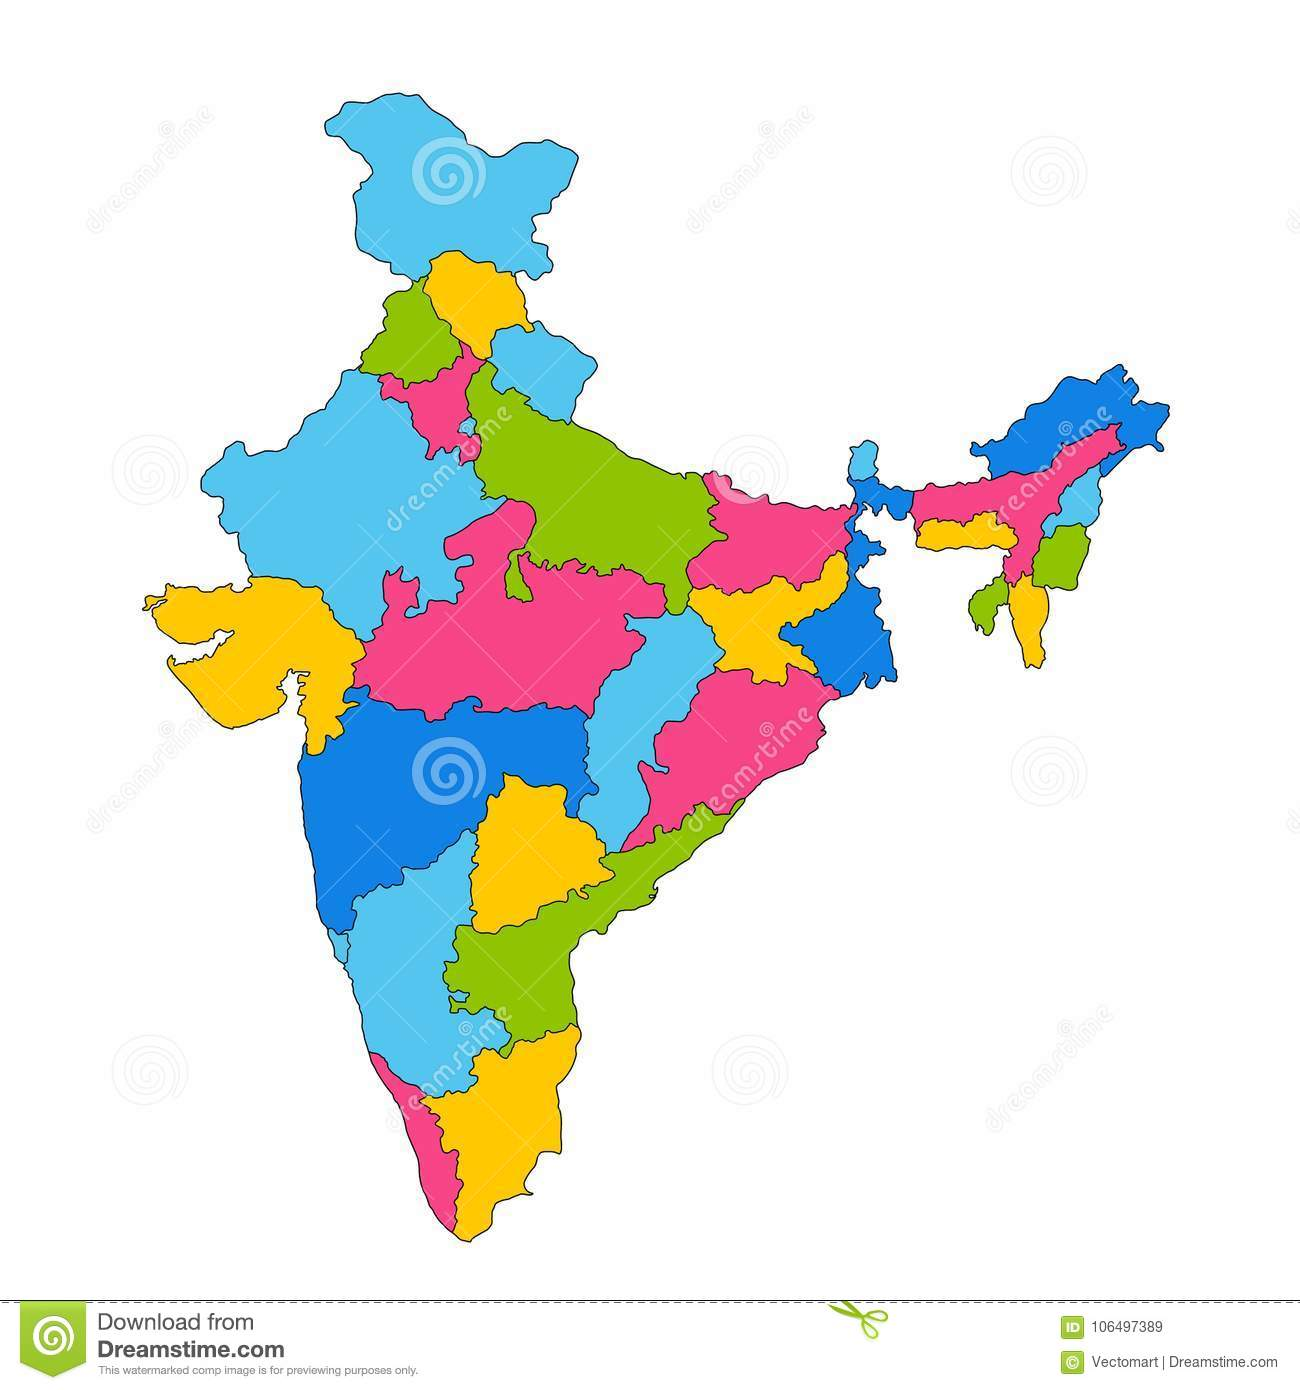 Boundary Map Of Asia.Detailed Map Of India Asia With All States And Country Boundary